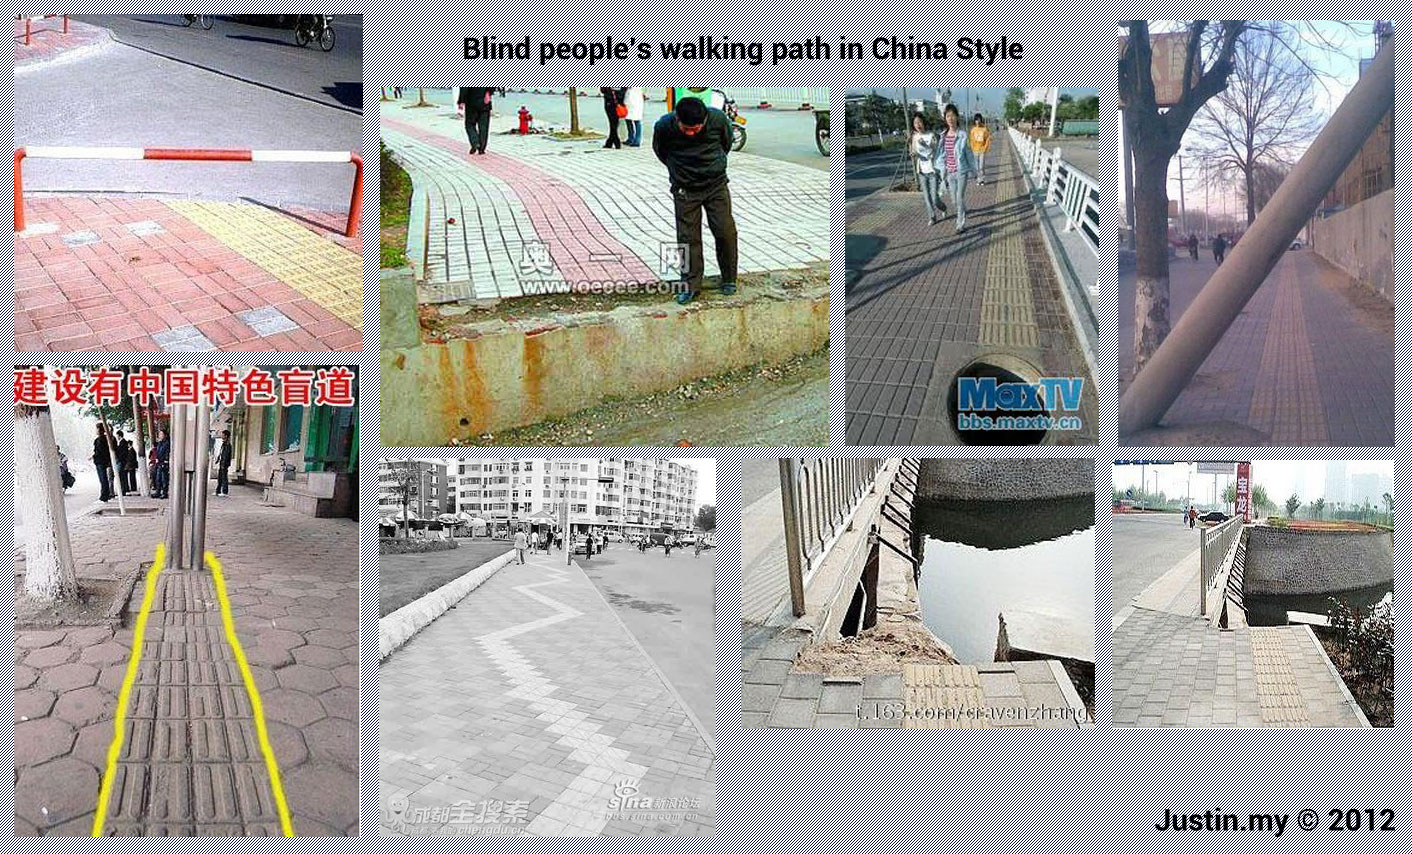 Blind people's walking path in China Style